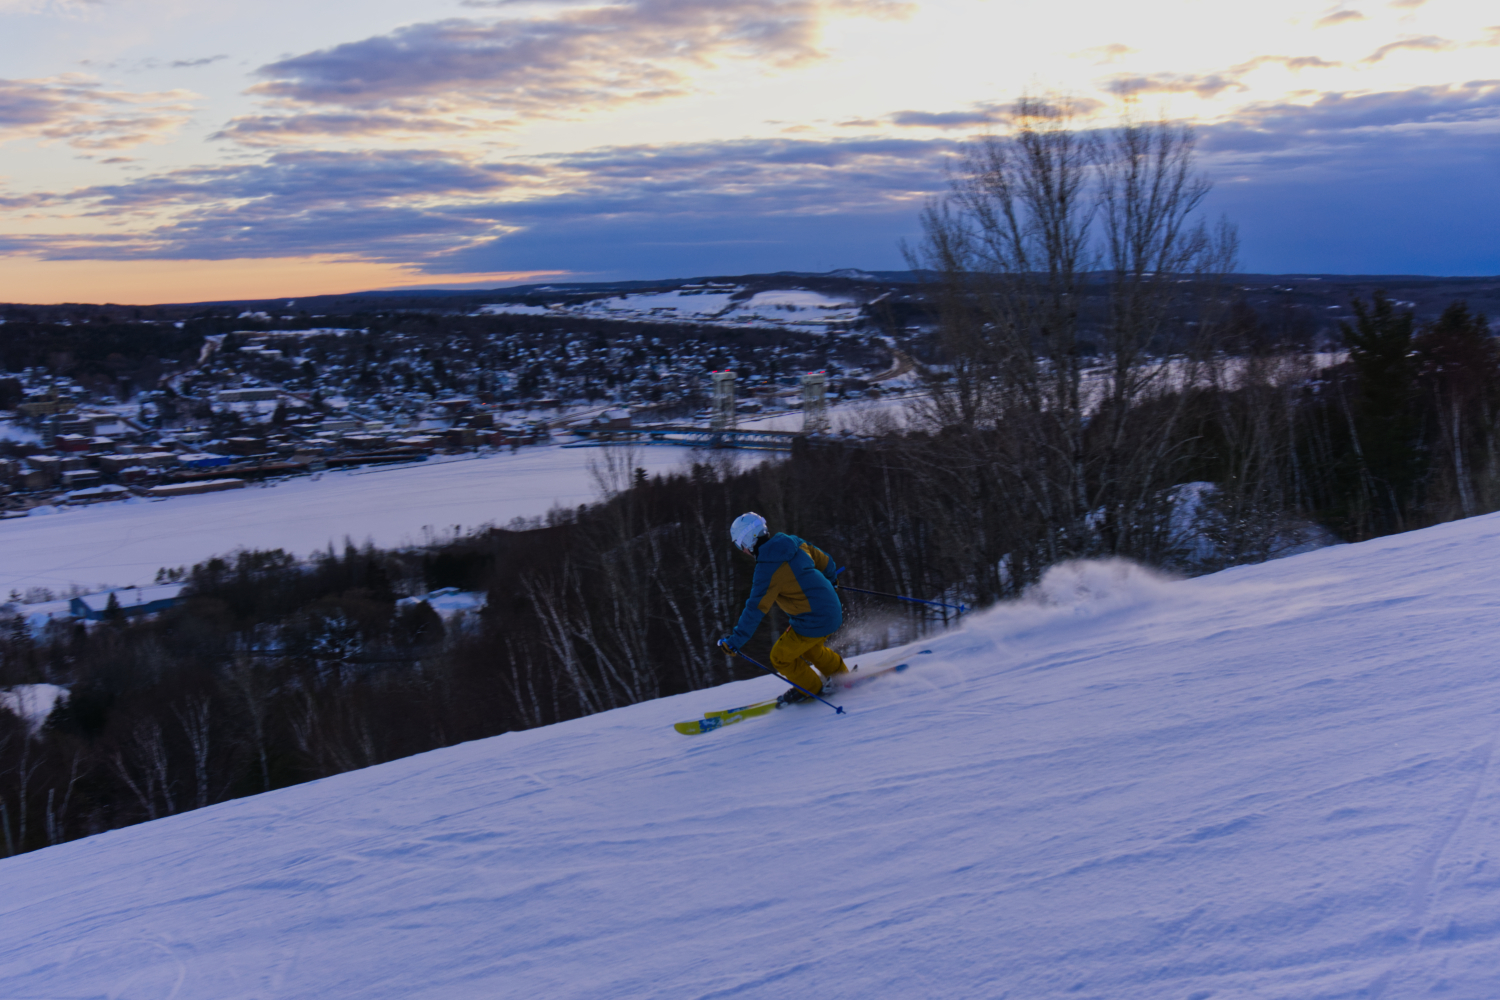 evening skiing at mont ripley